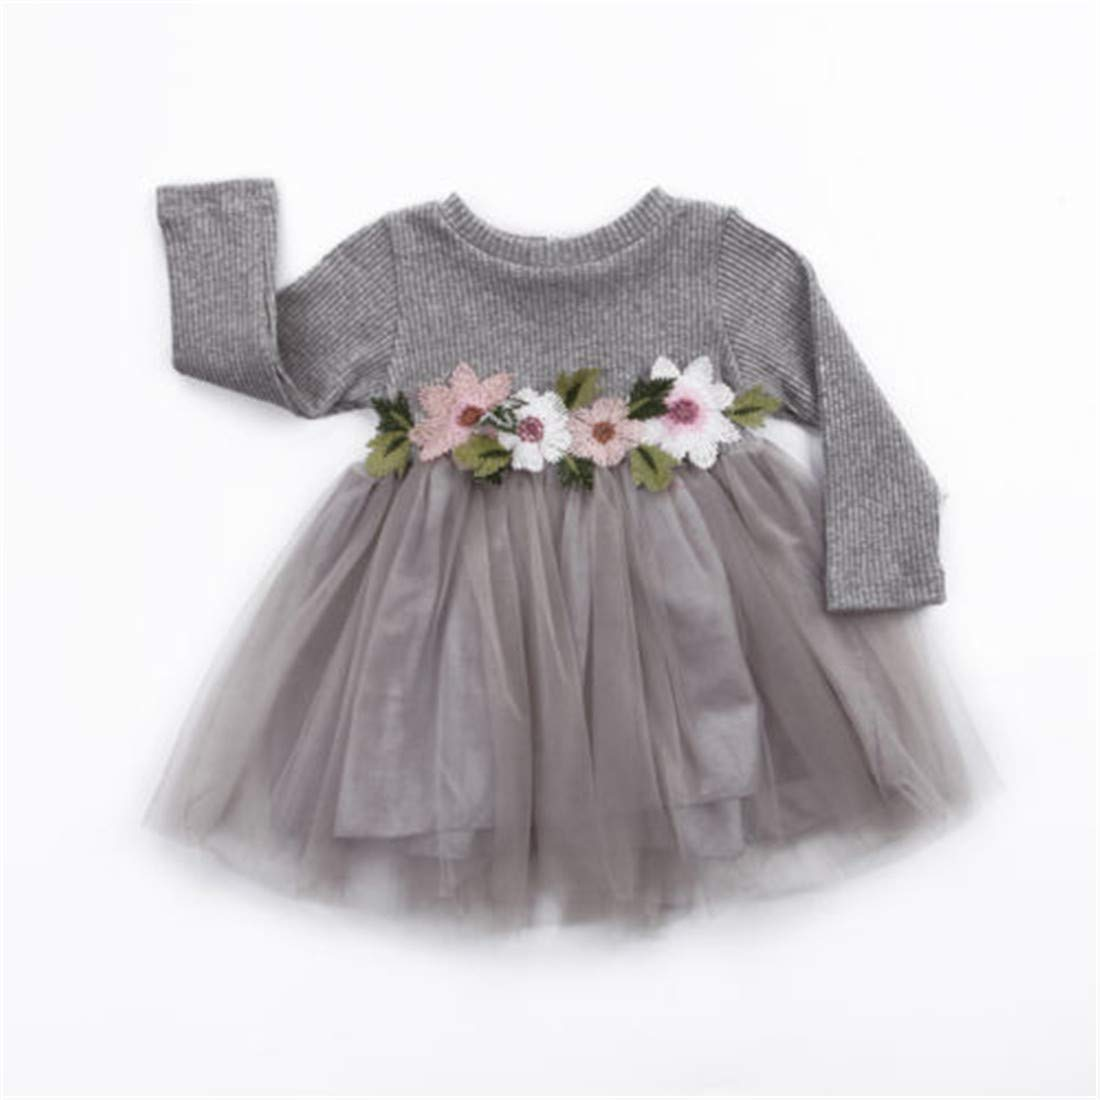 Charmemory Infant Girl Lace Floral Knitted Tutu Party Dresses Outfits